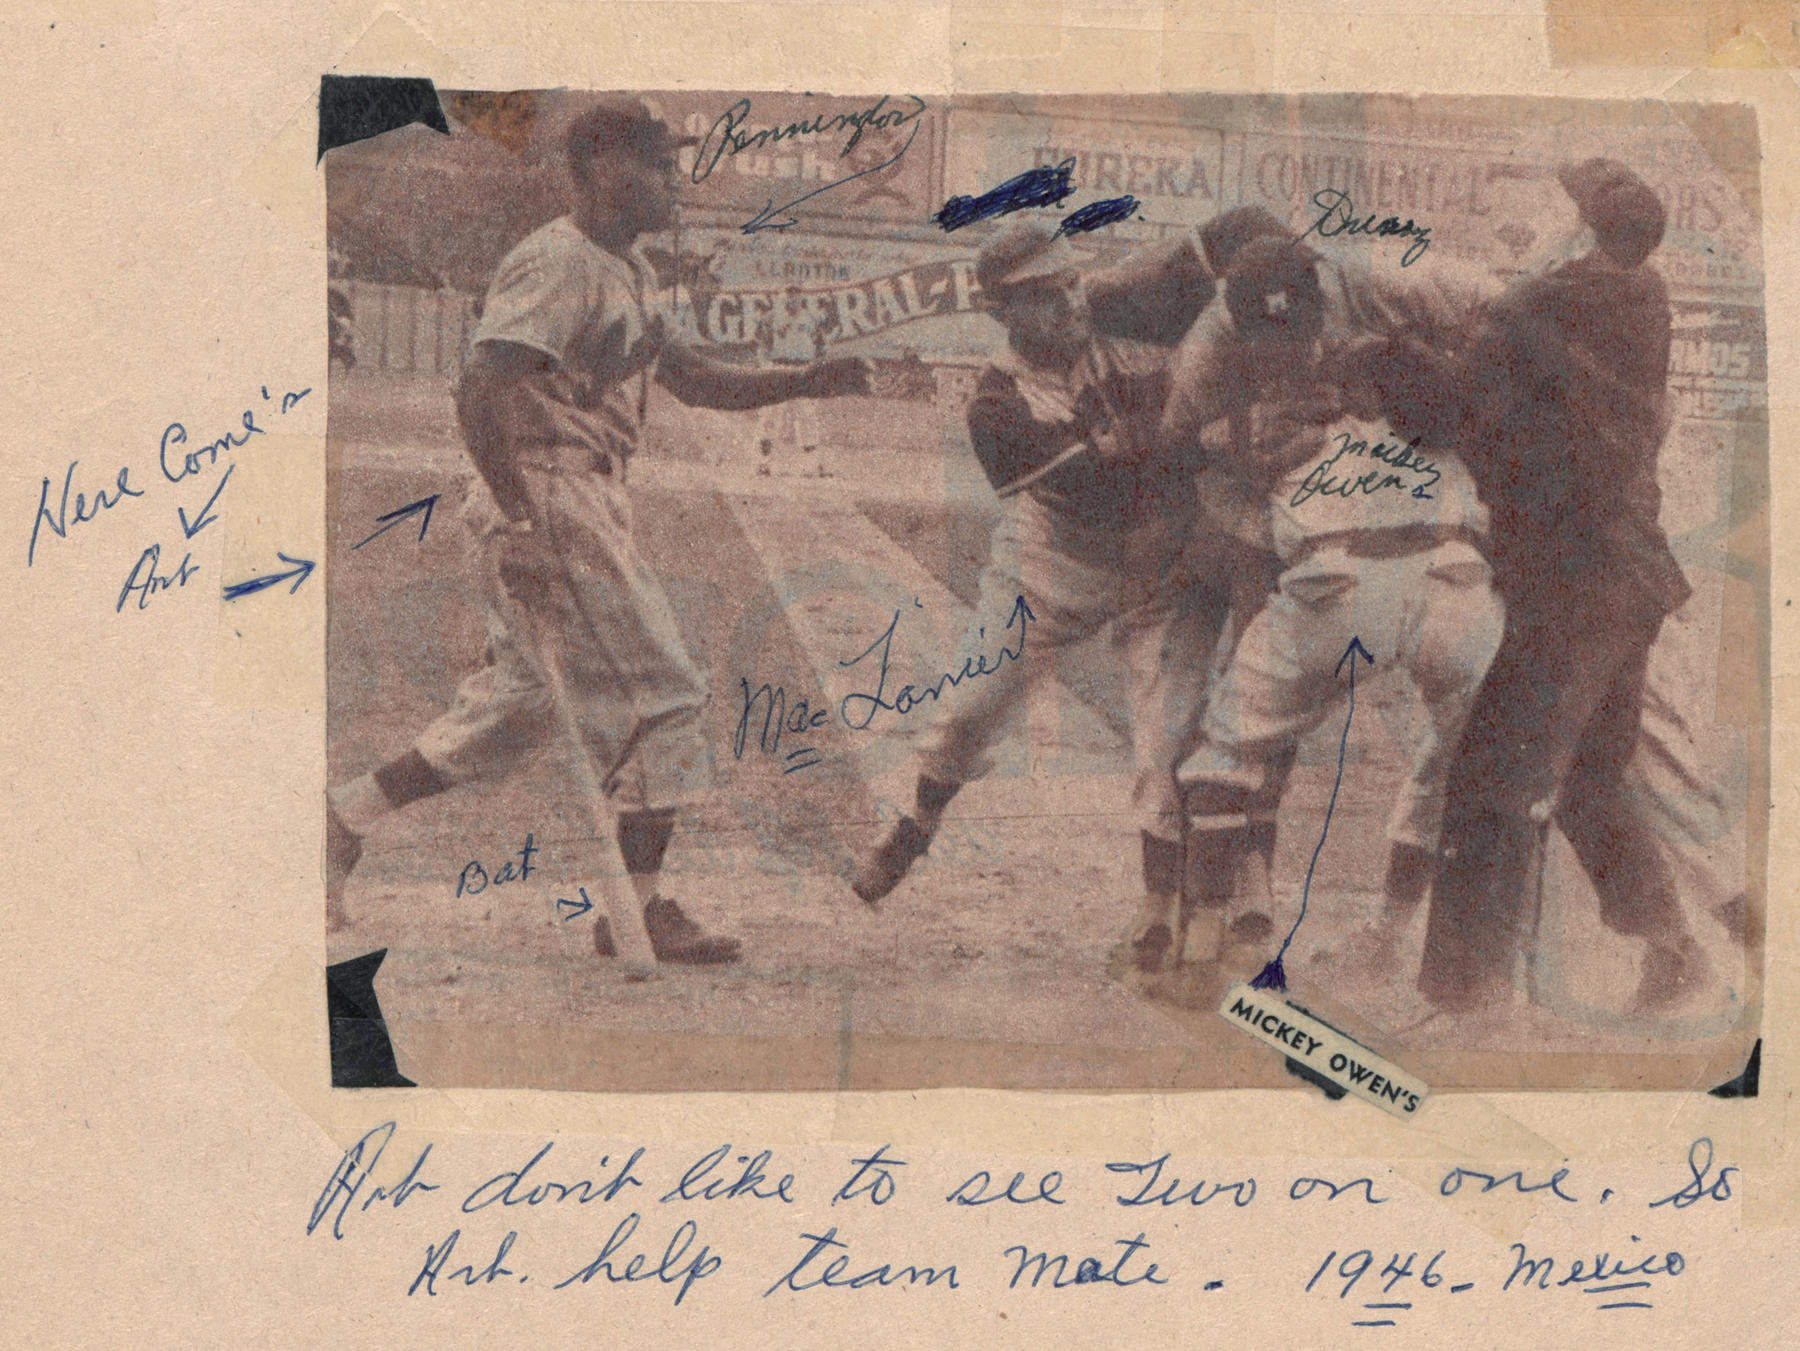 """Pennington has annotated his scrapbook throughout.  Under this photo clipped from a newspaper, Pennington's caption reads, """"Art don't like to see two on one. So Art help team mate.  1946 - Mexico.""""  Arrows further identify Pennington, Max Lanier, Mickey Owens, and Claro Duany.  Pennintgon has also pointed an arrow to """"Bat"""" and """"Here come's [sic] Art.""""   BA-SCR-2-025   (National Baseball Hall of Fame)"""